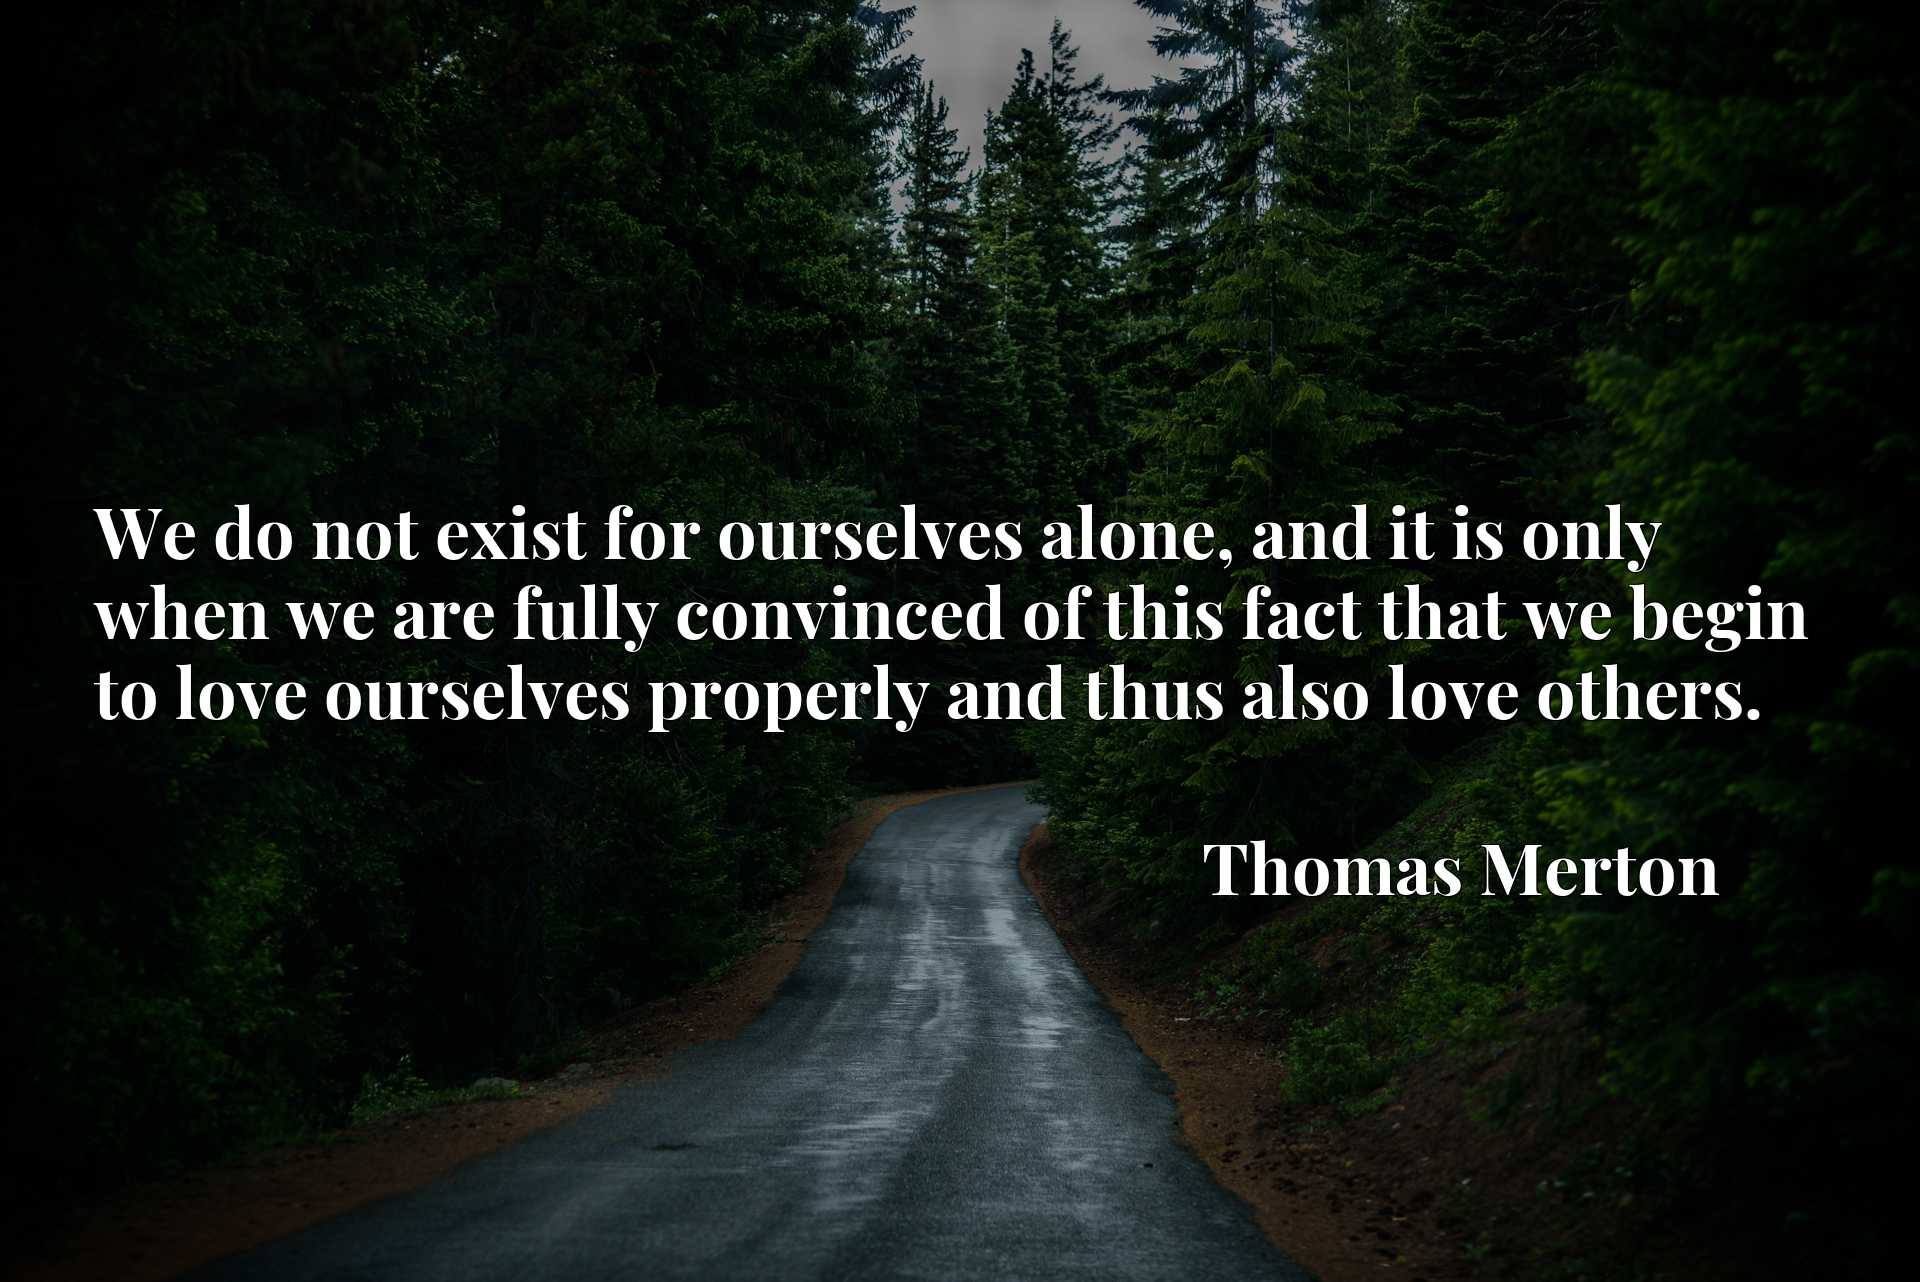 Quote Picture :We do not exist for ourselves alone, and it is only when we are fully convinced of this fact that we begin to love ourselves properly and thus also love others.